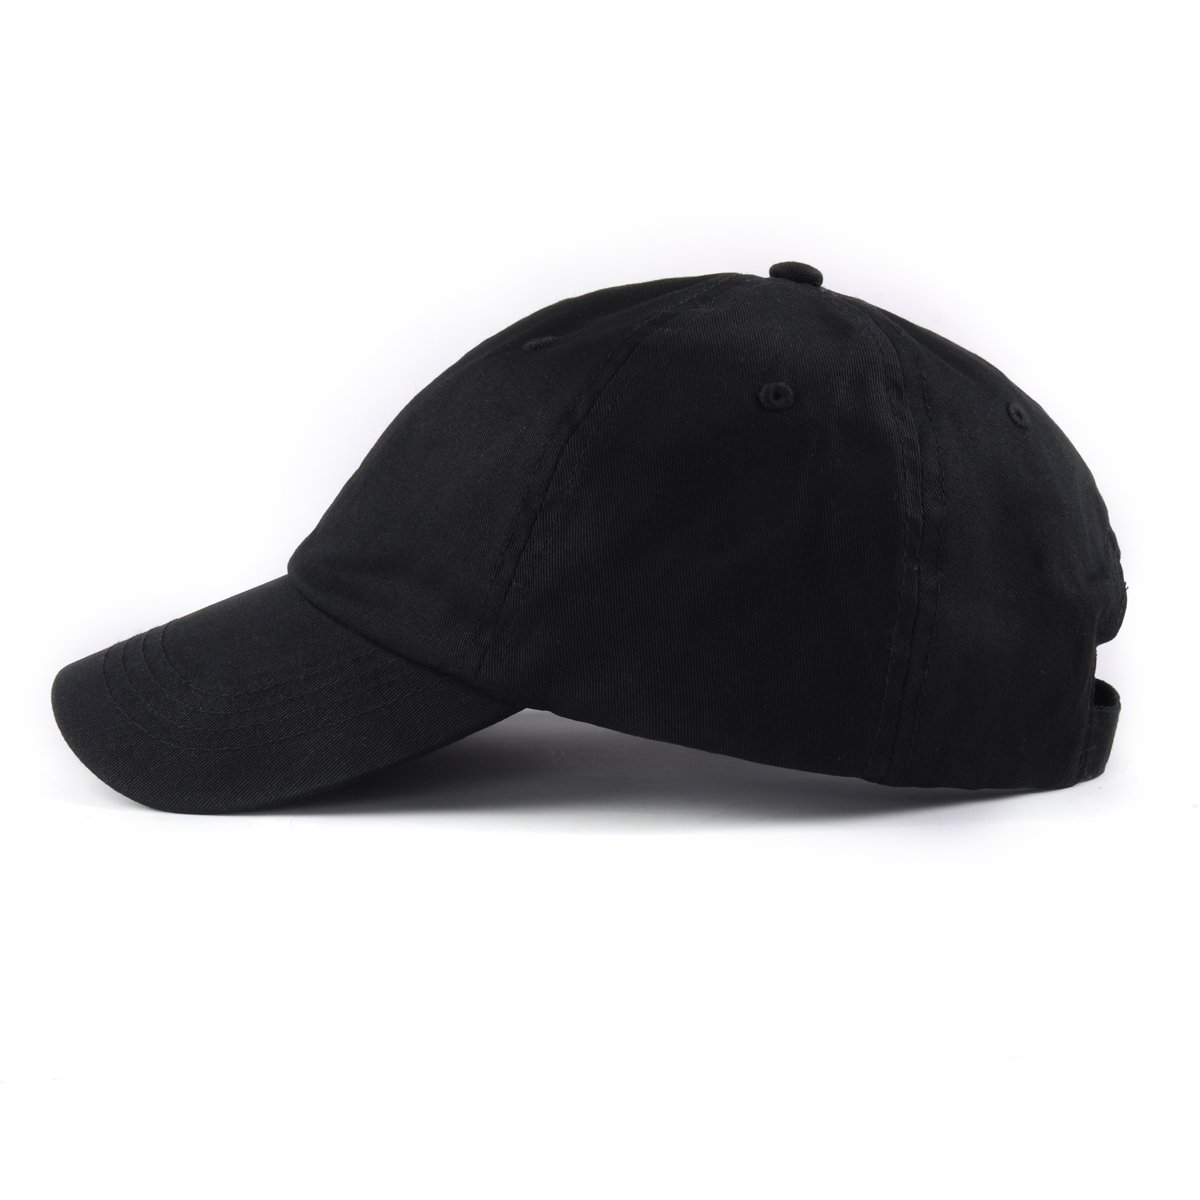 2aeec136 AUNG CROWN Plain Dad Hat Women Men Cute Adjustable Cotton Floral Baseball  Cap (Black Plain)